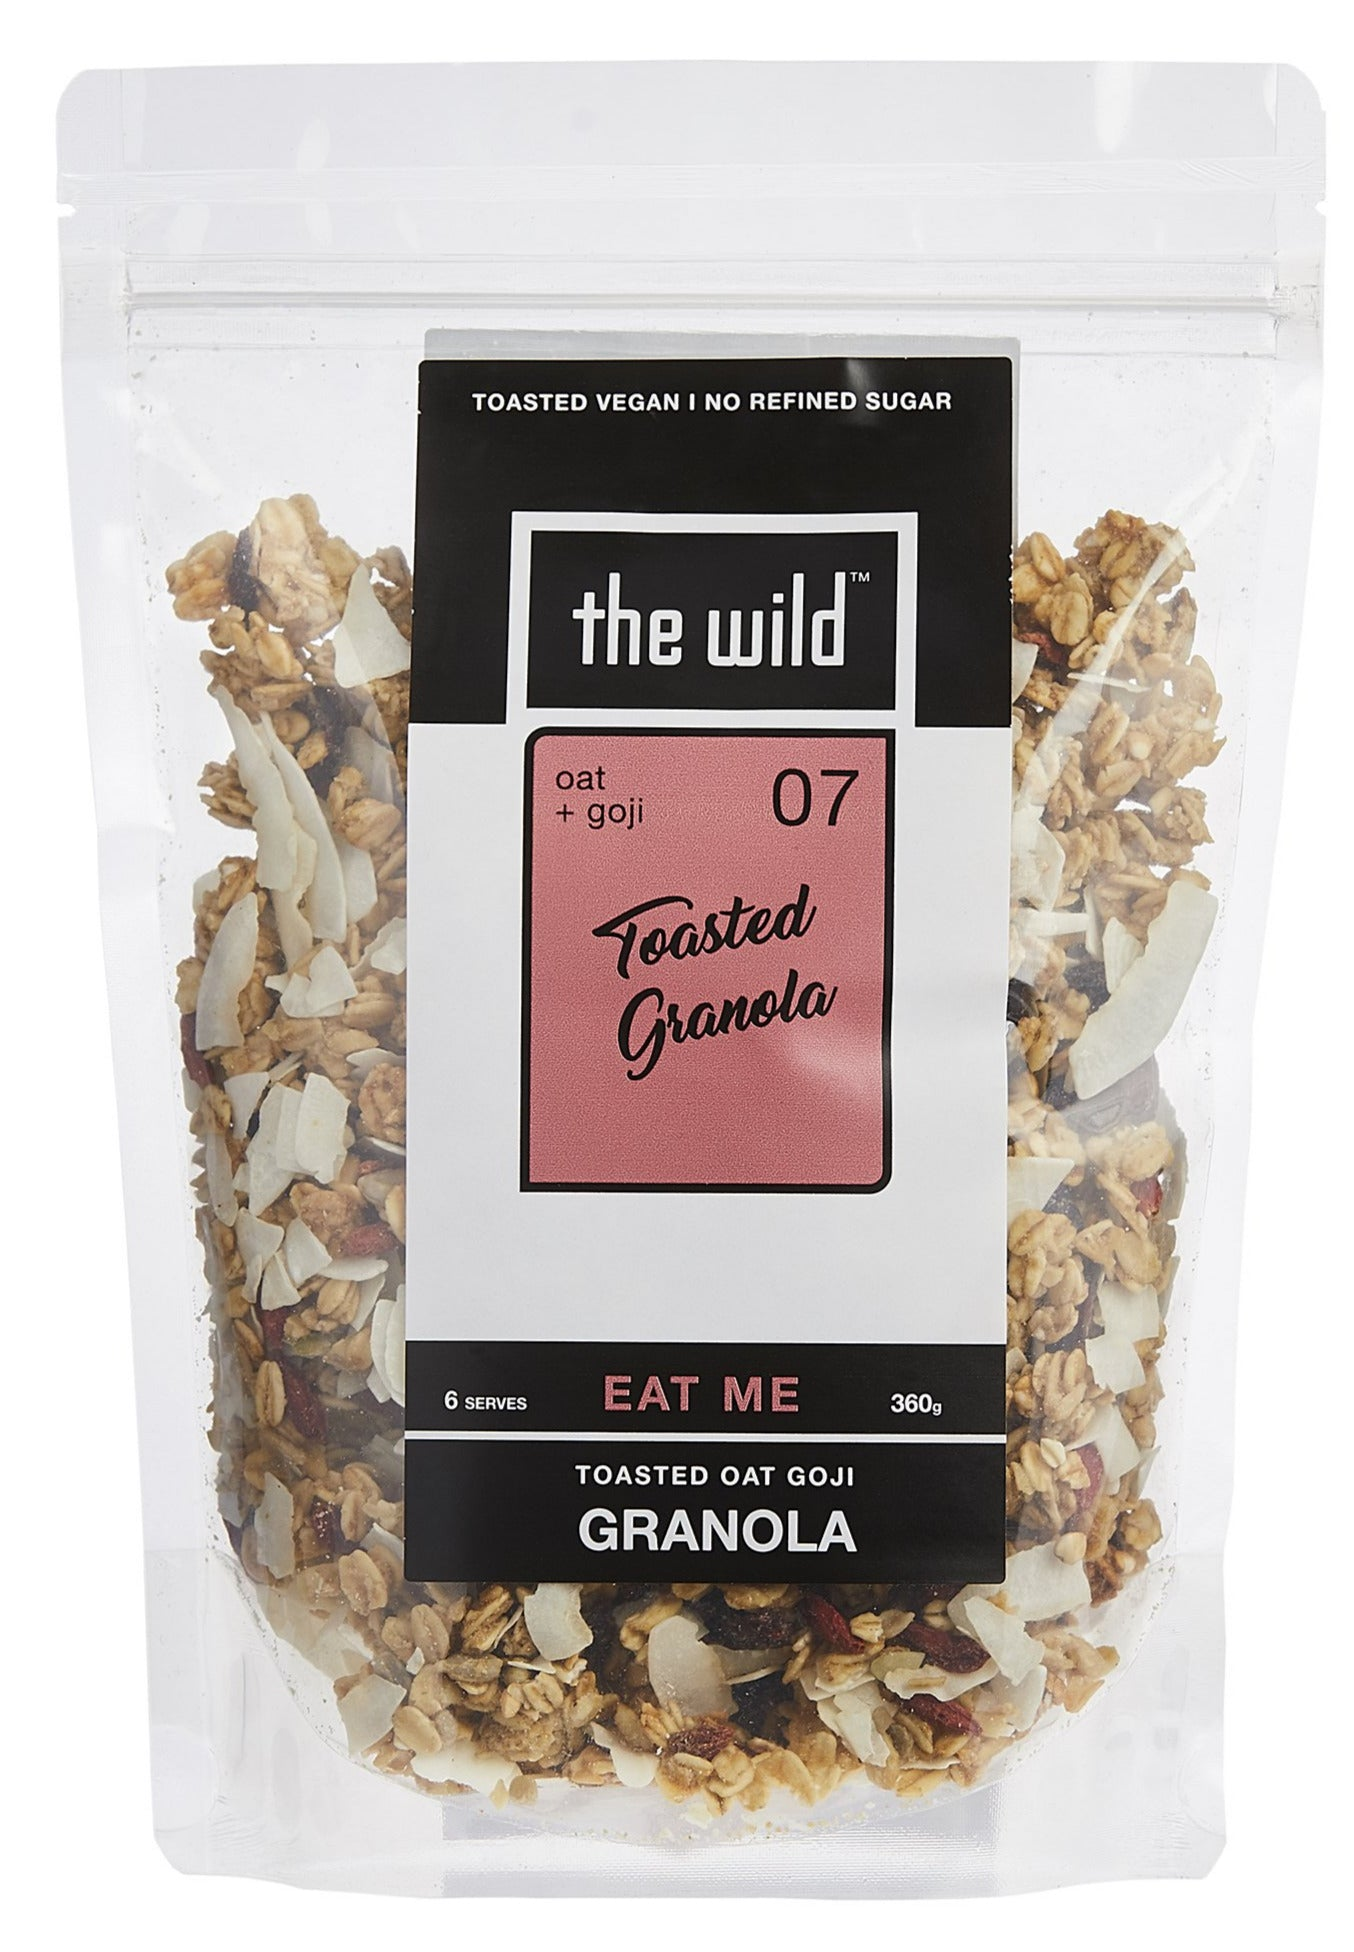 Oat + Goji Toasted Granola, 360g or 1kg